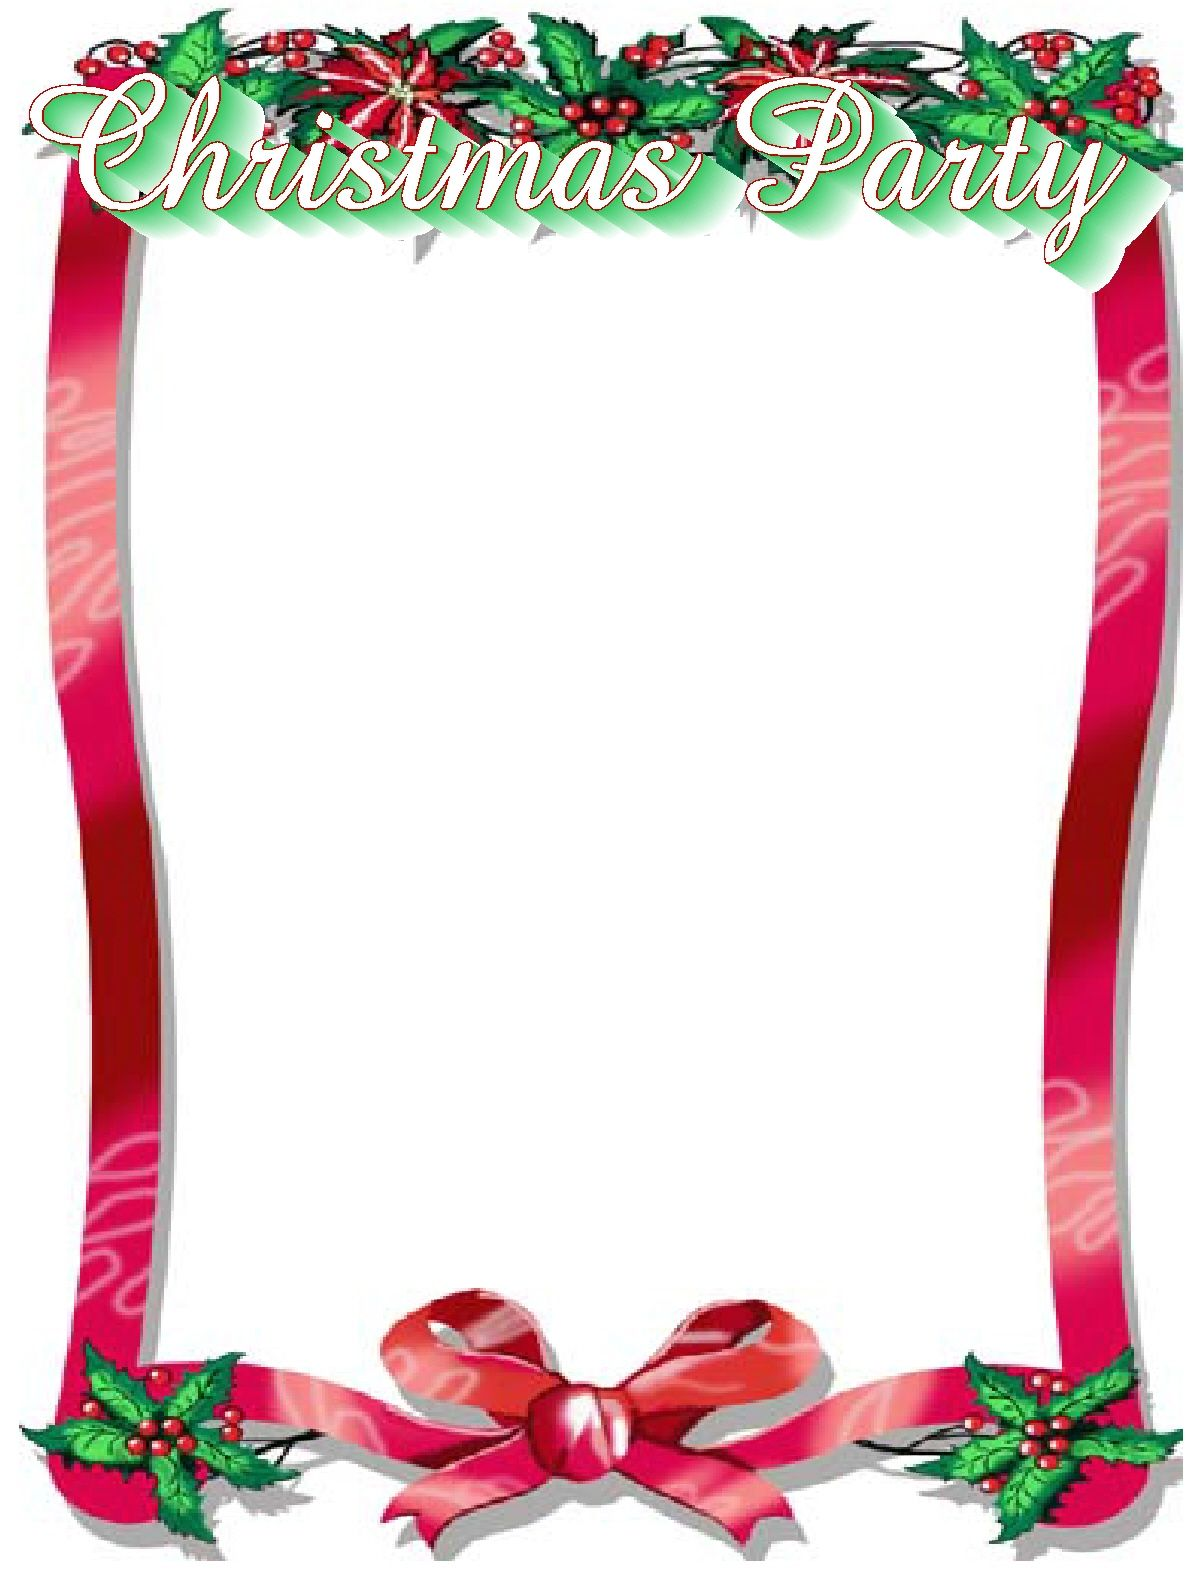 Free Ms Word Christmas Borders Colona Rsd7 With Word Border Templates Free Dow Christmas Templates Free Free Christmas Flyer Templates Holiday Flyer Template